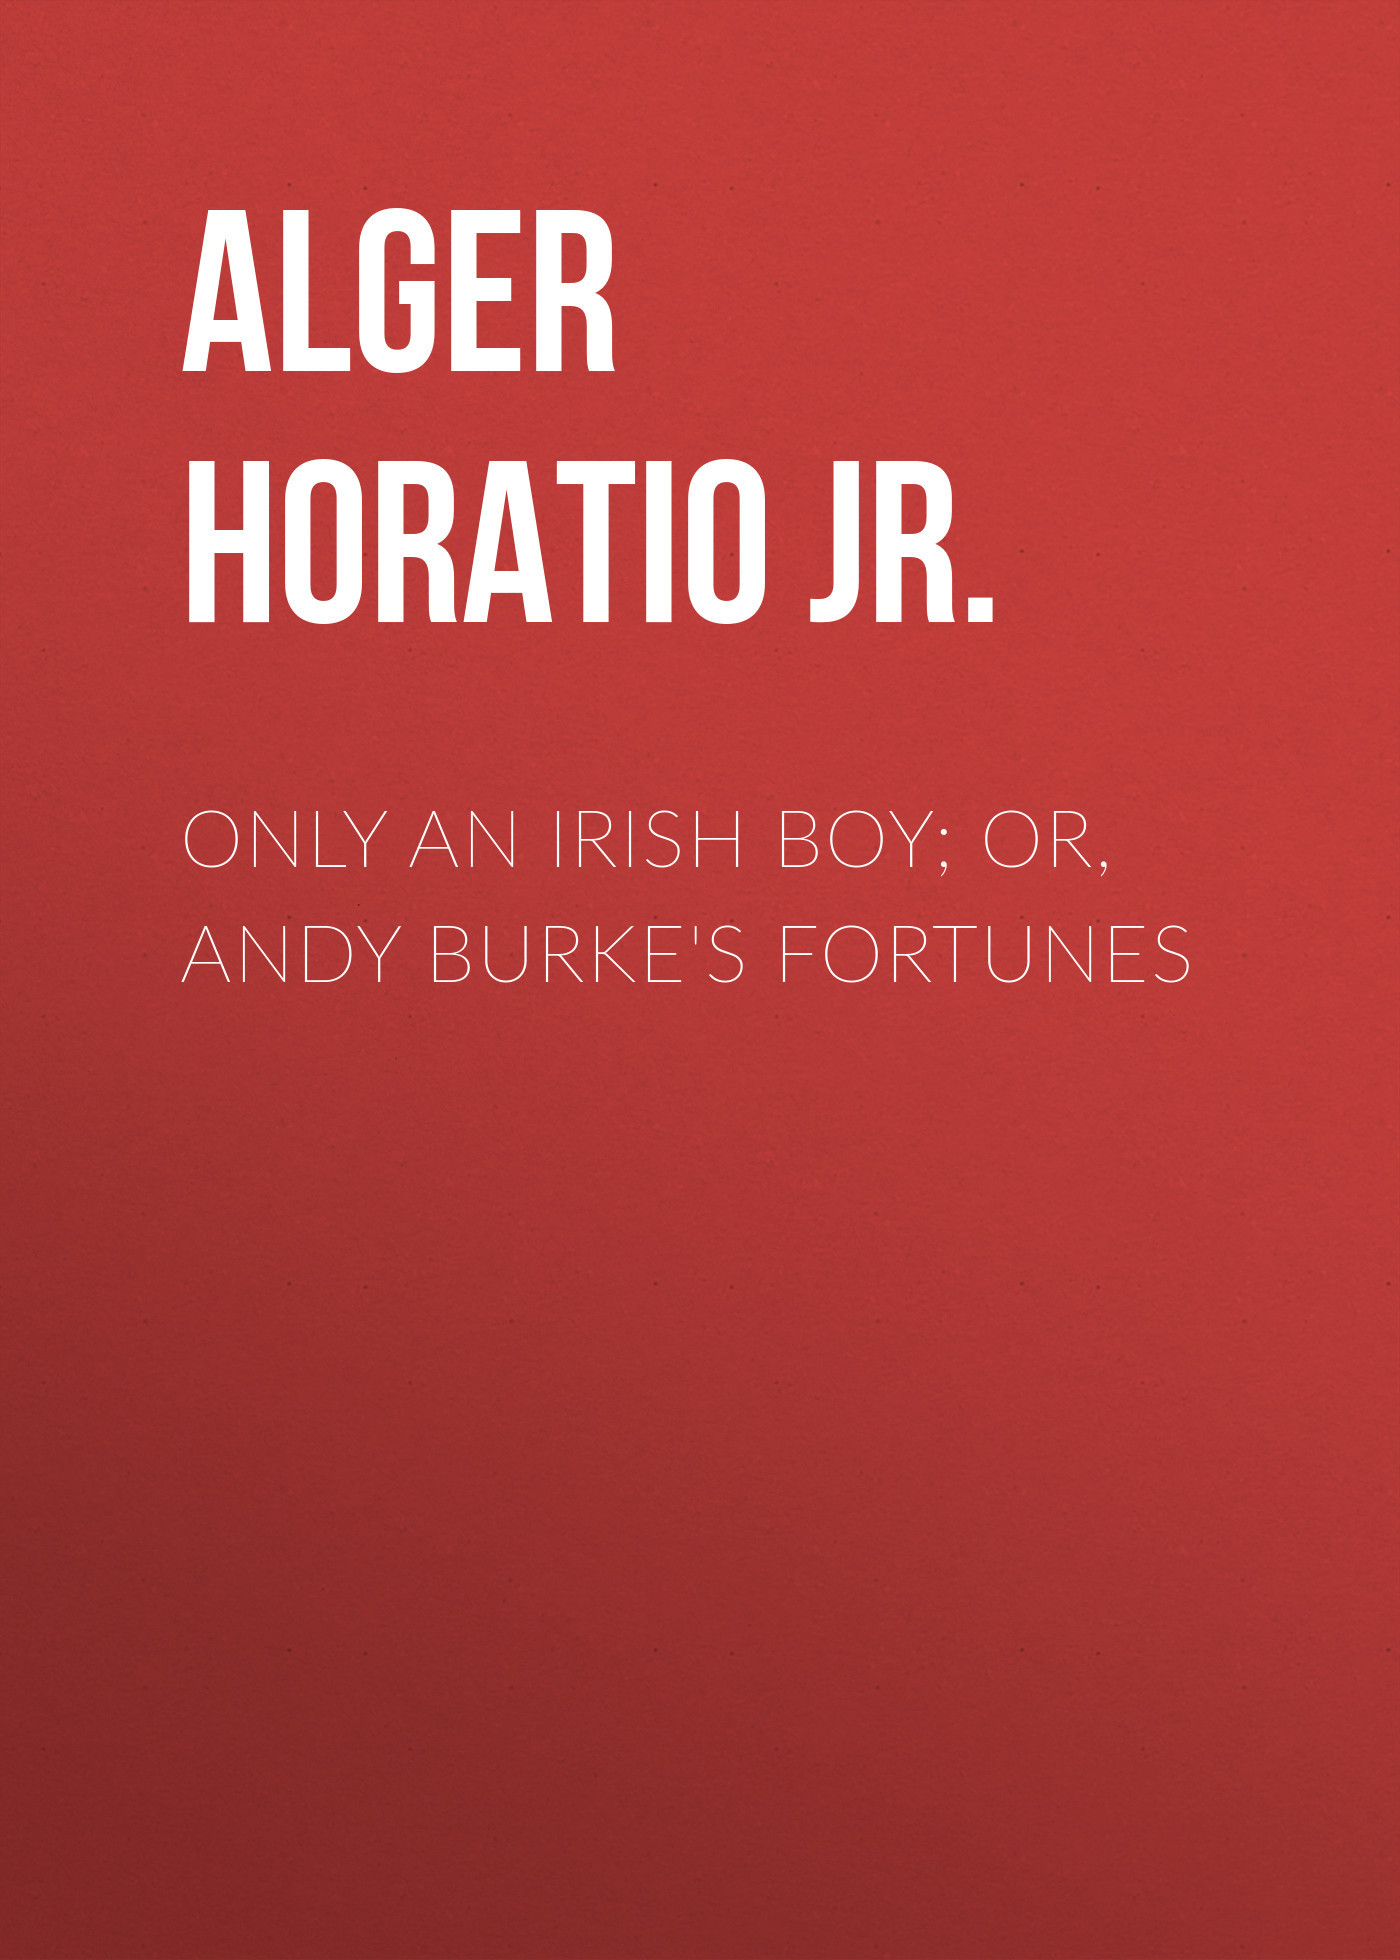 Alger Horatio Jr. Only an Irish Boy; Or, Andy Burke's Fortunes original x92 3gb 32gb android 7 1 smart tv box amlogic s912 octa core kd player 4k h 265 bluetooth 4 0 set top box pk h96 max